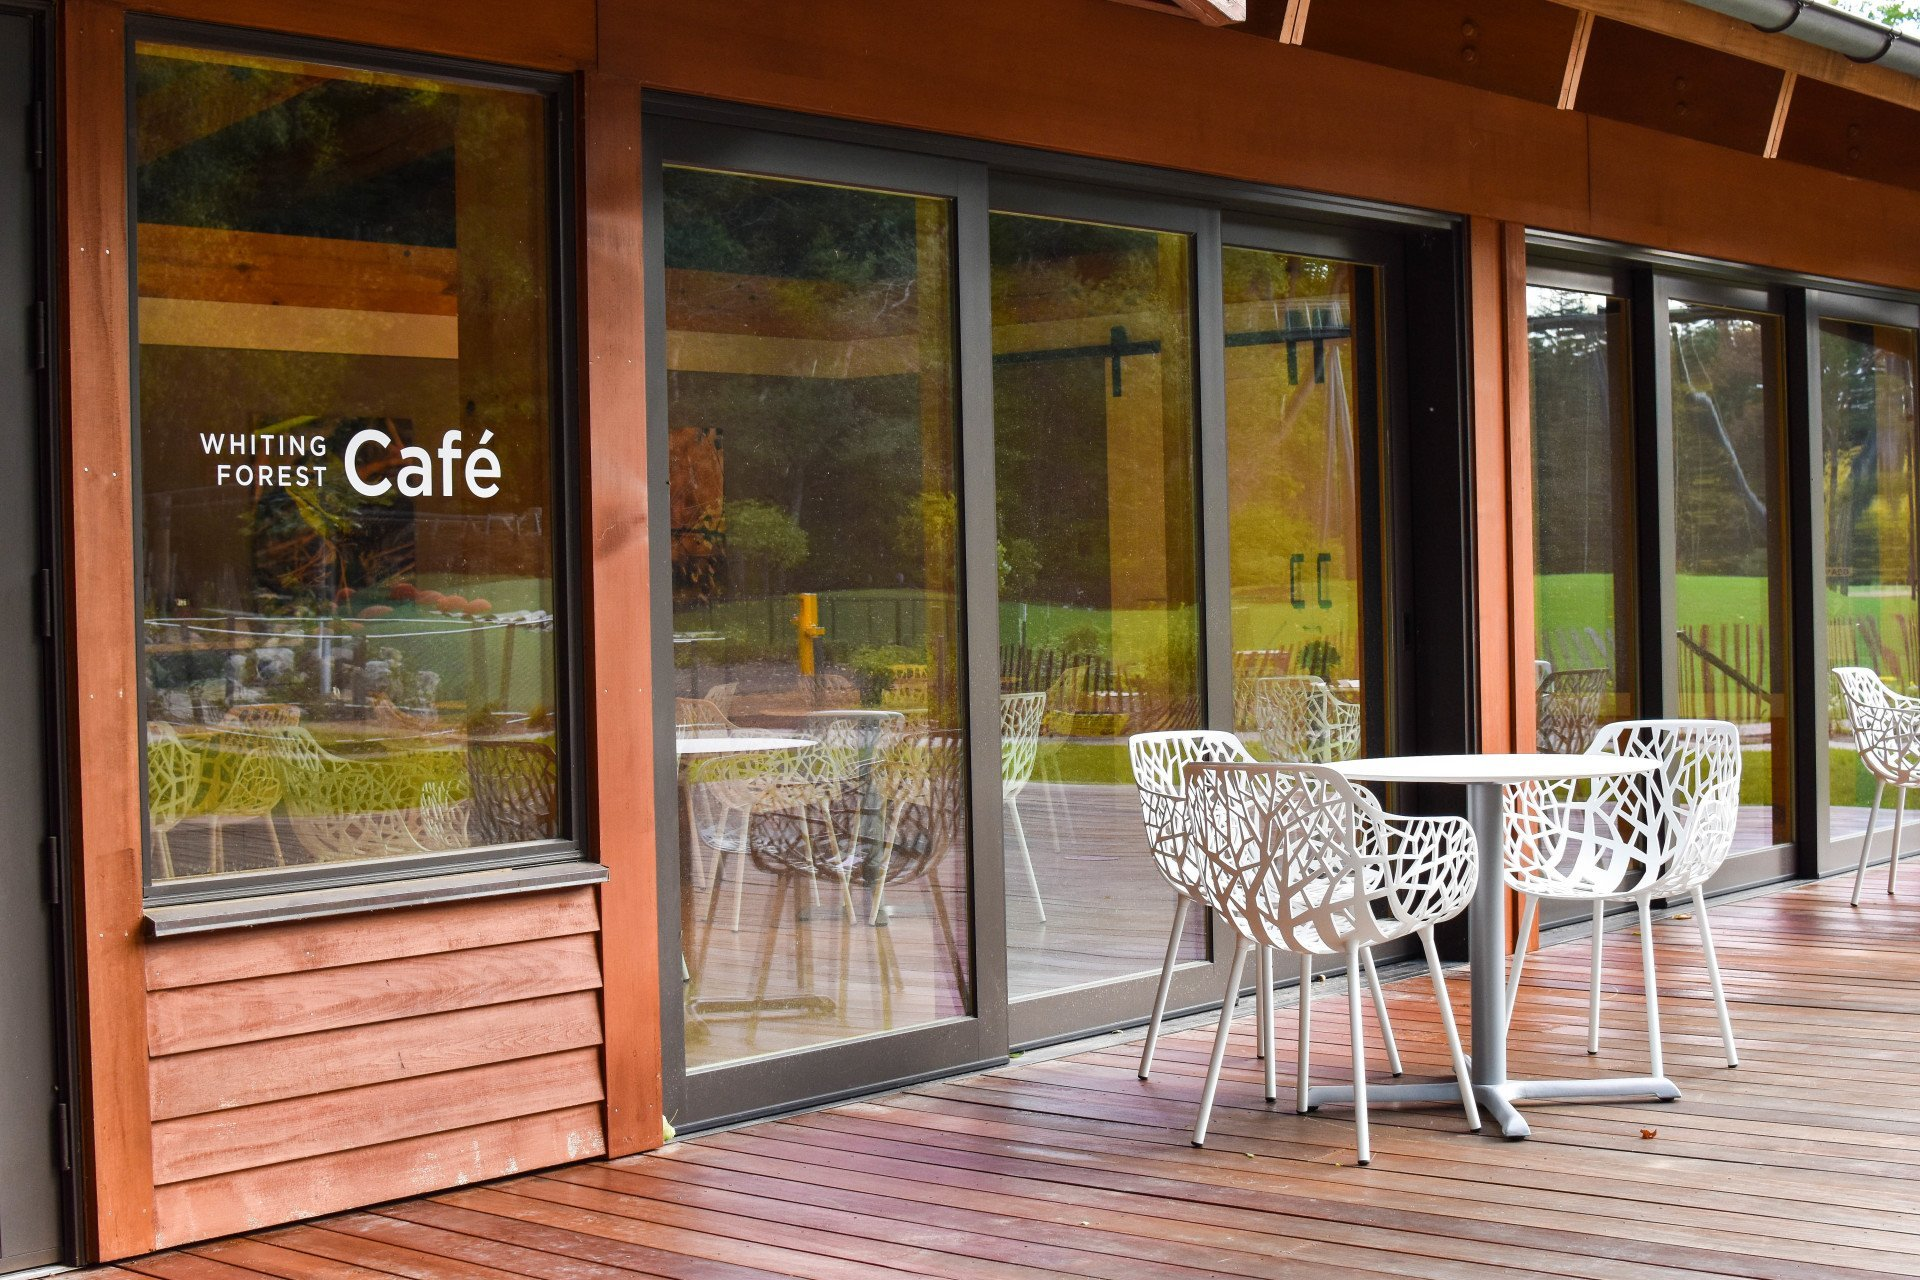 Cafe exterior view with deck